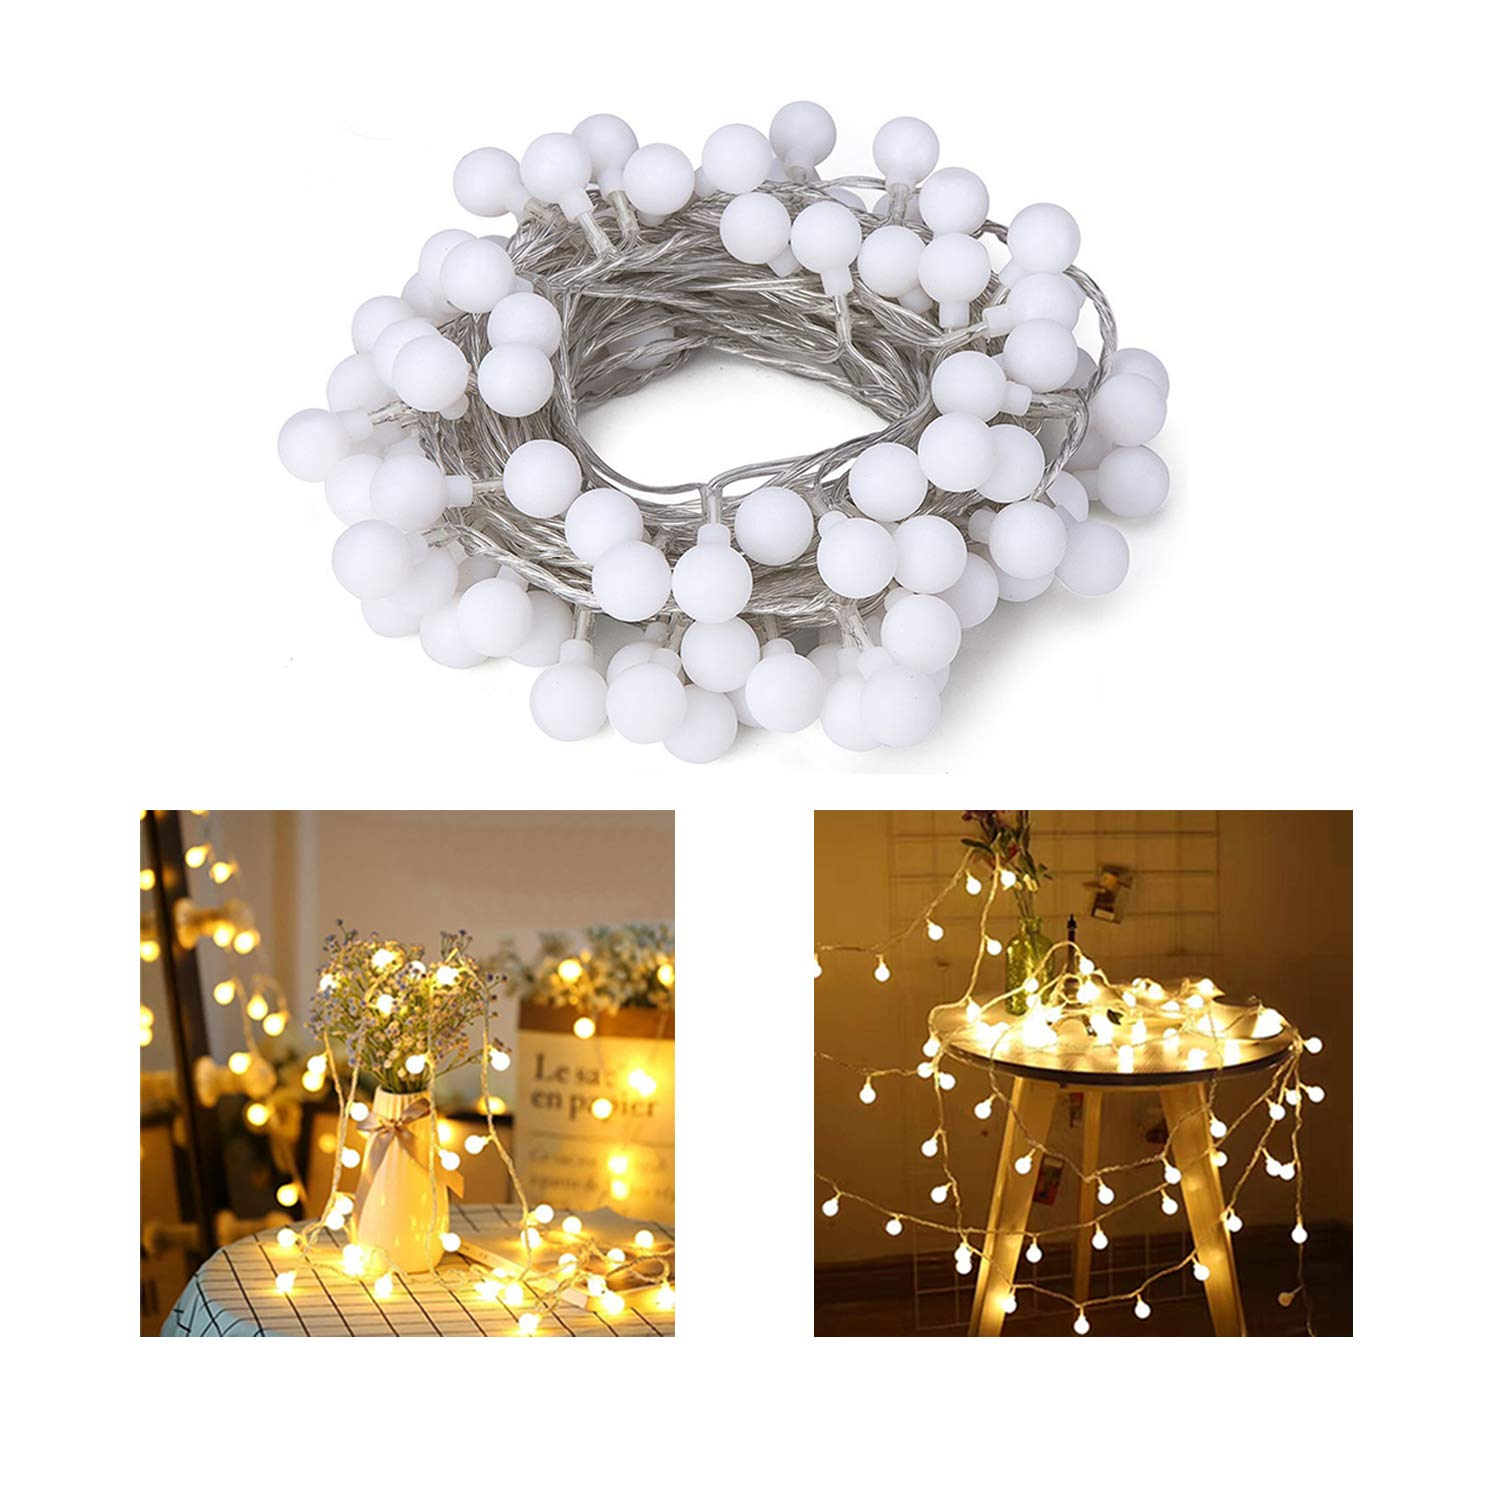 Hirosa 33ft 100 LED Globe String Lights Fairy Lighting Indoor Outdoor Decorative Light for Patio/Garden/Party/Christmas Tree/Wedding/Dorm/Room Decorations(Warm White) by Hirosa (Image #1)